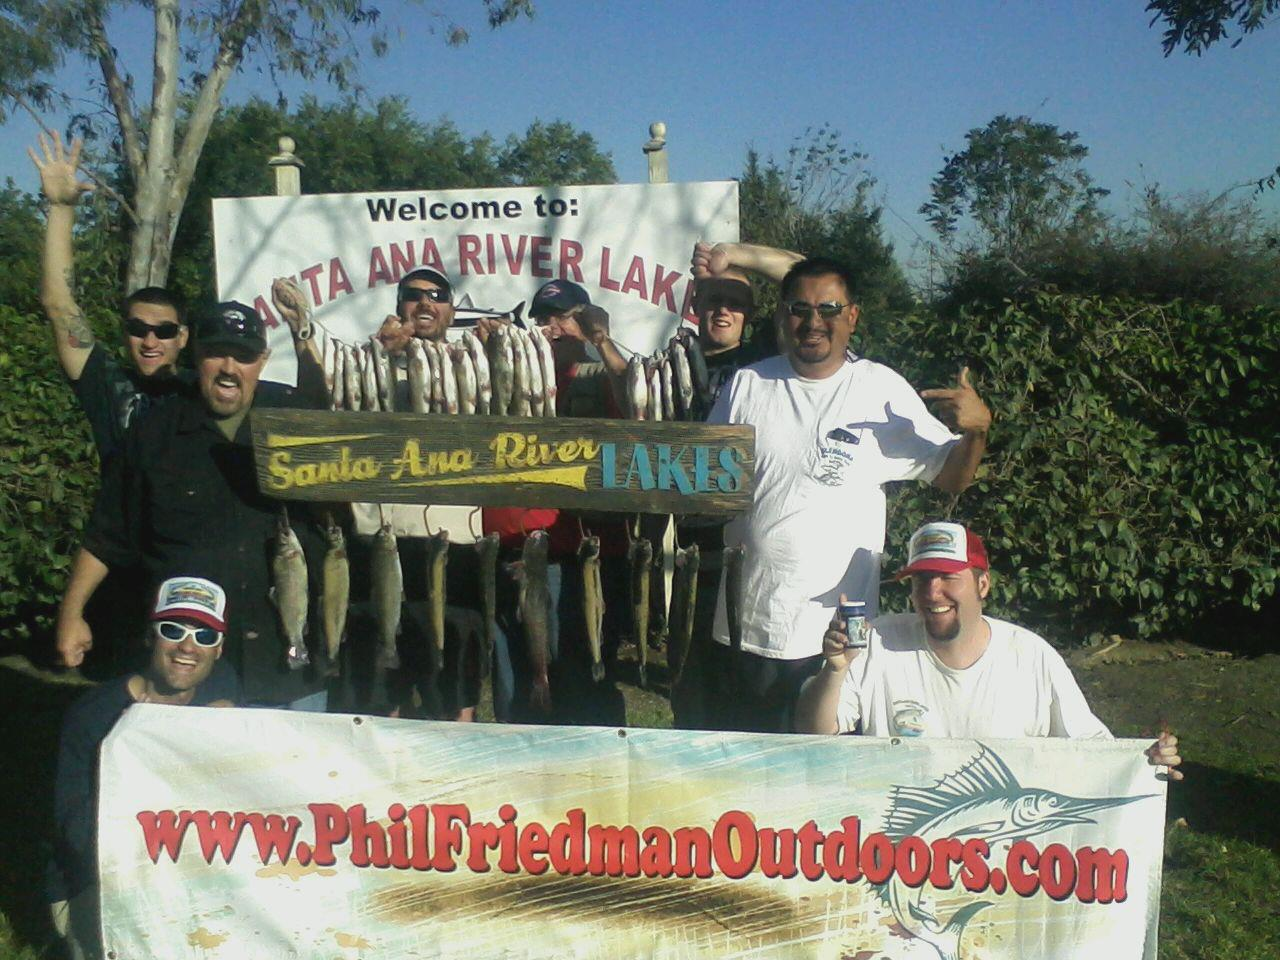 Phil Friedman and staff fishing at Santa Ana River Lakes